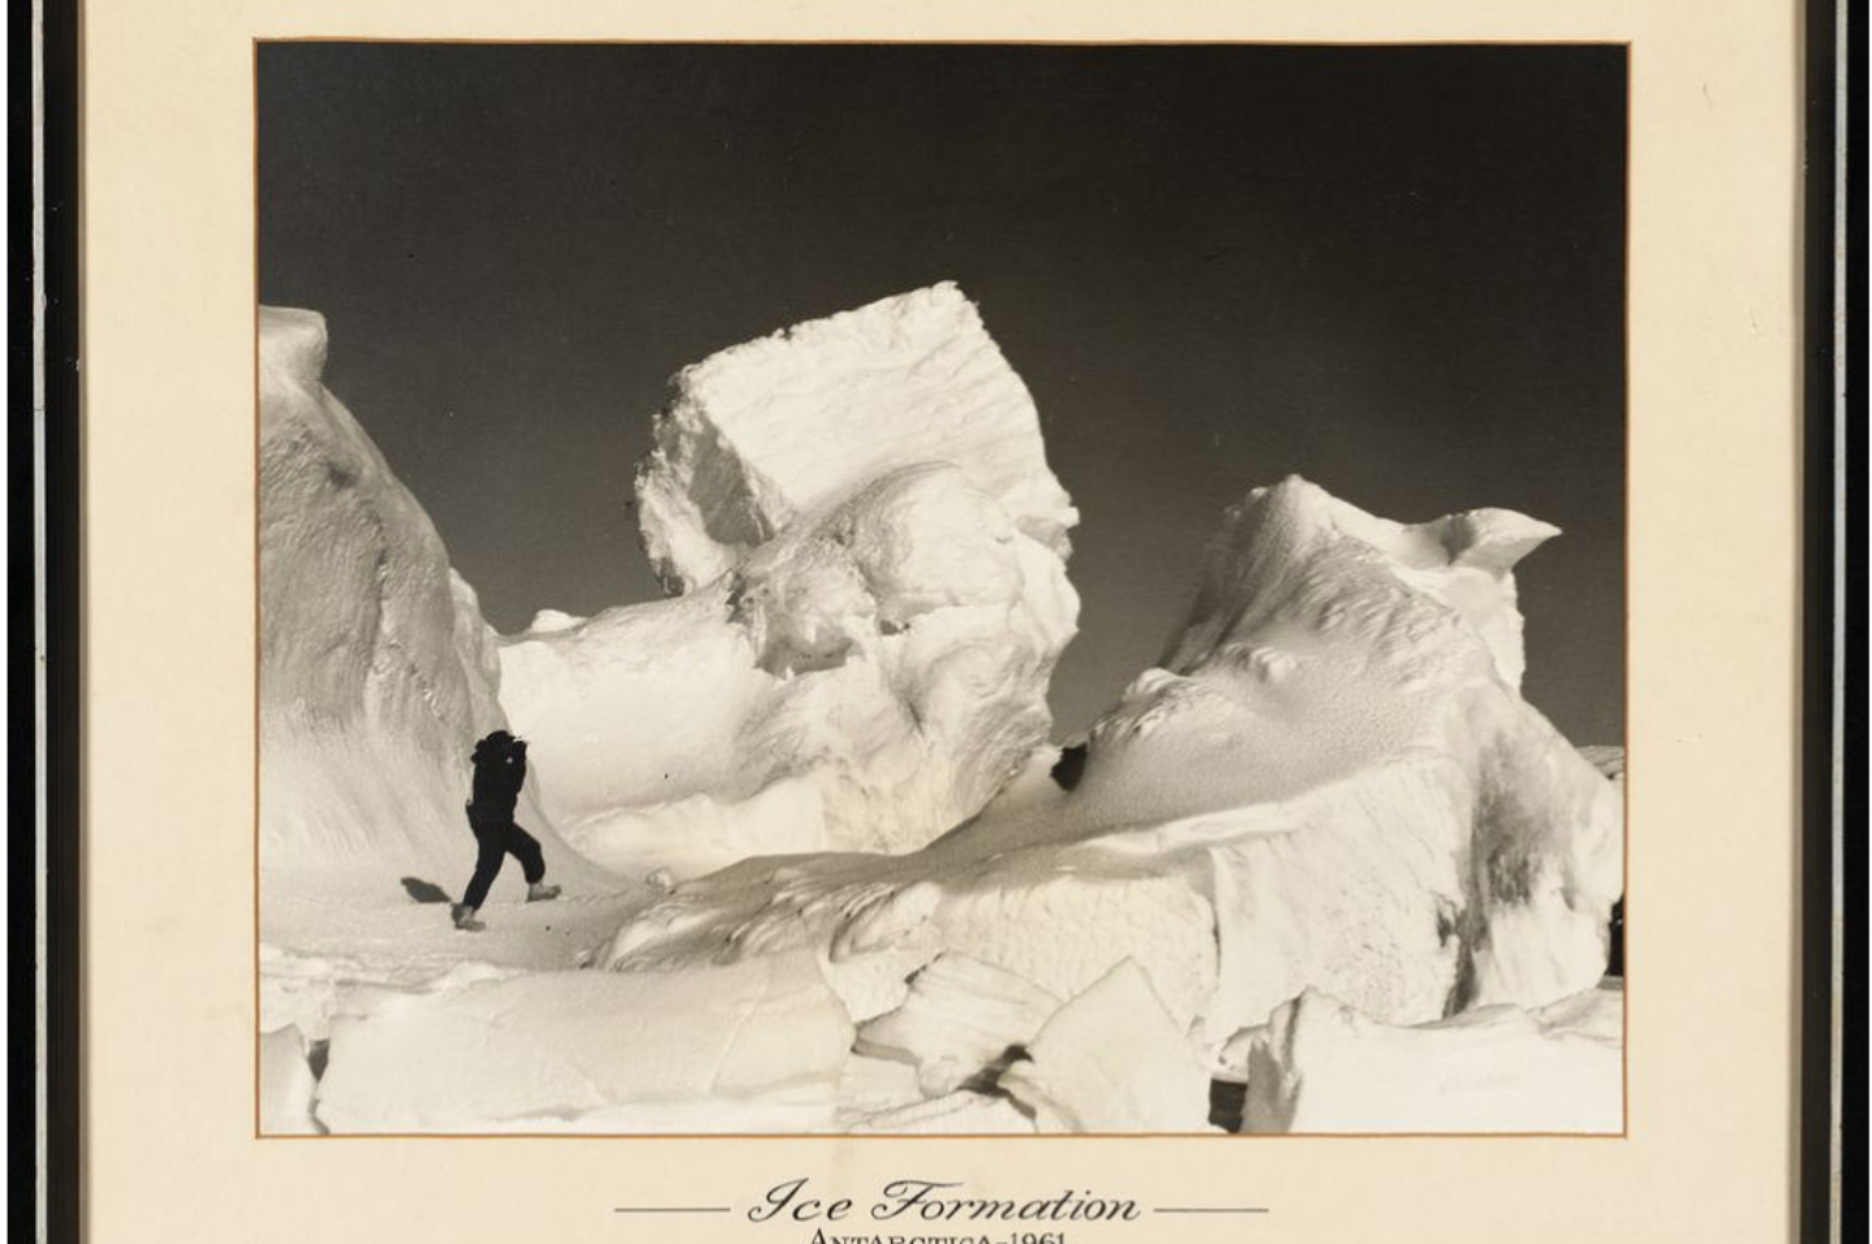 14587 1 An unidentified figure stands next to an ice formation in Antarctica 1961